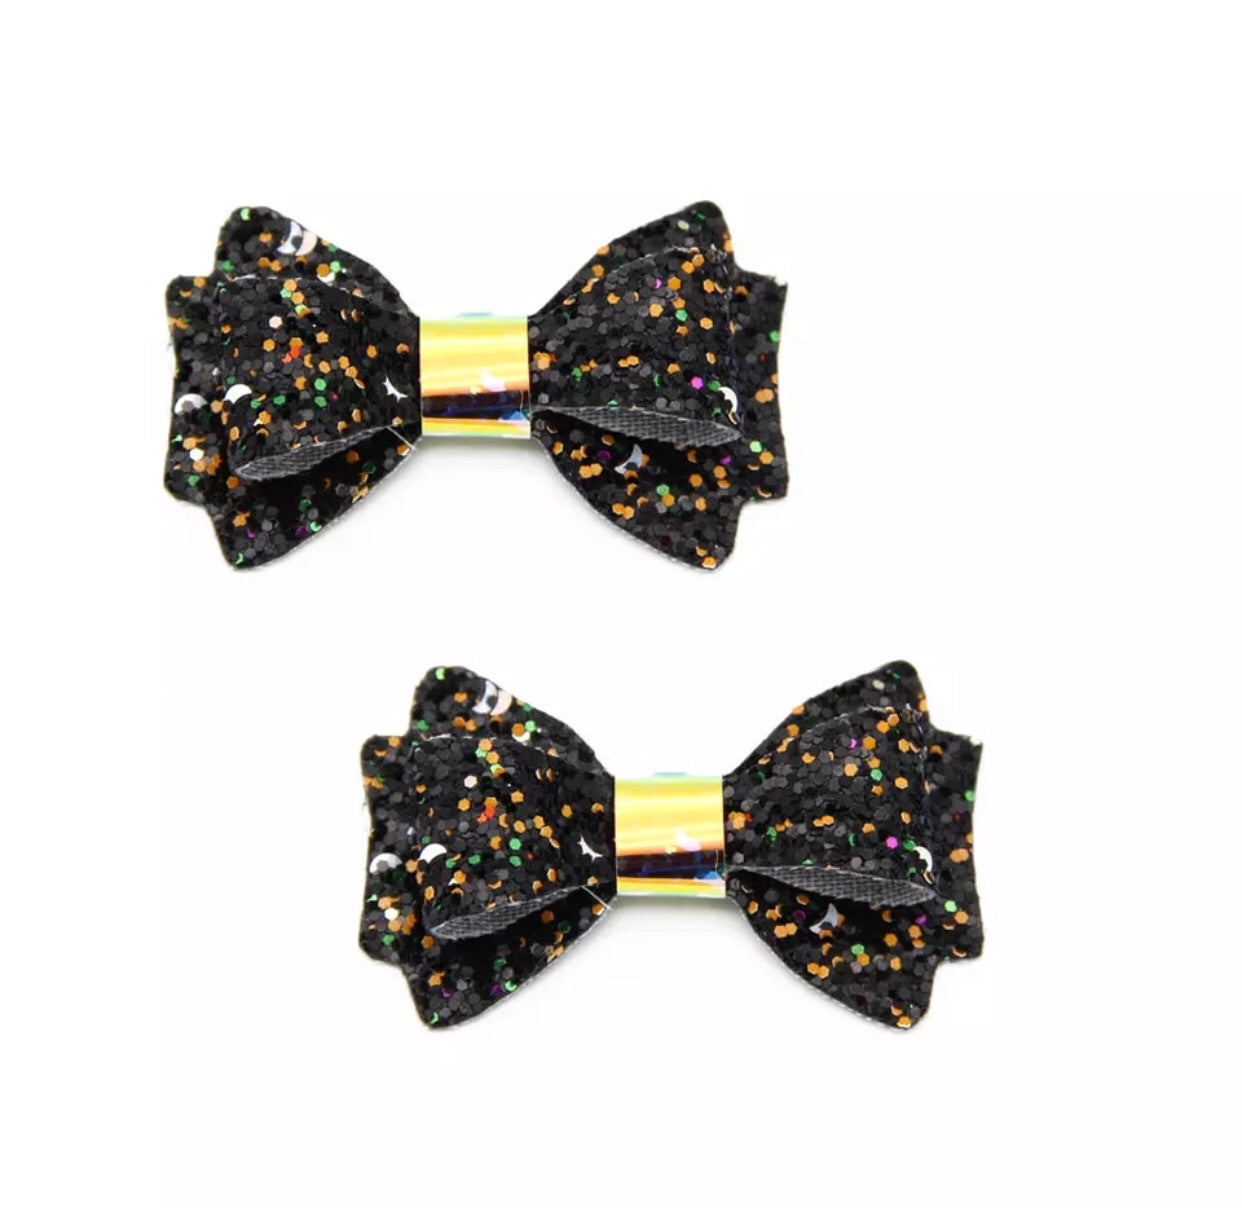 Chunky Glitter Bow - Black Multicolor - shabbyflowers.com